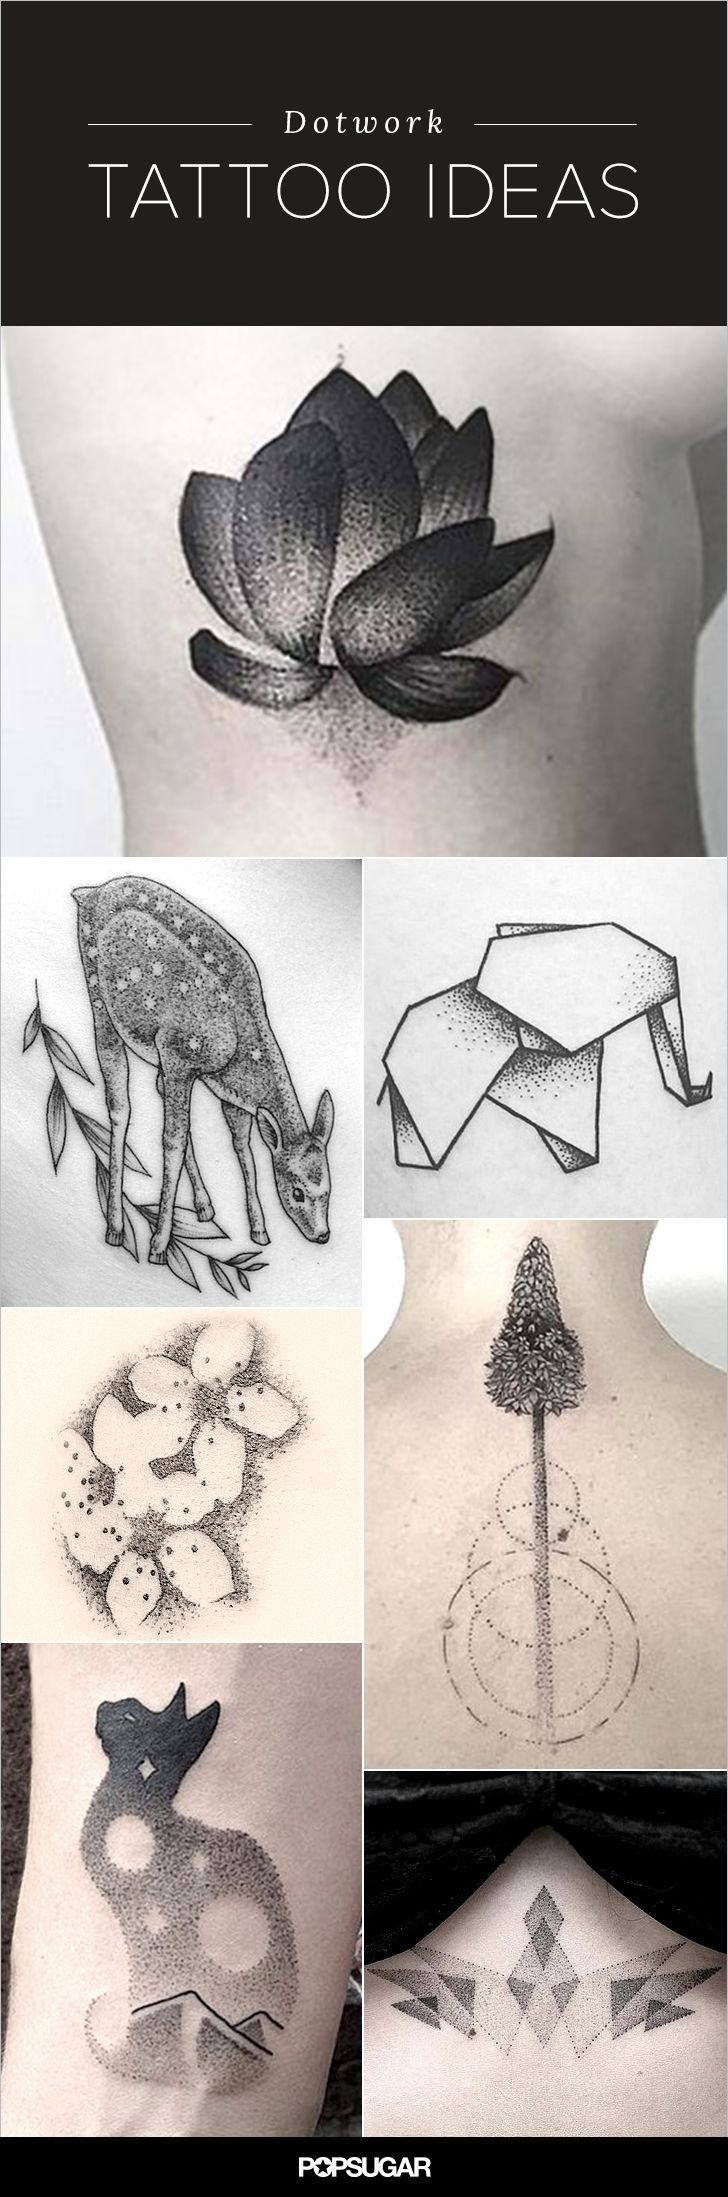 We'll just say it: these are the most impressive tattoos we've ever seen. Dotwork tattoos are comprised entirely of — you guessed it — dots and are often created by hand instead of machine, resulting in truly magnificent (though time-consuming) masterpieces. Anything you'd like to pay homage to can be immortalized in a dotwork tattoo, whether it's your favorite pet, vacation destination, or just a simple arrow design. No matter what you choose to get, the results will be awe-inspiring.